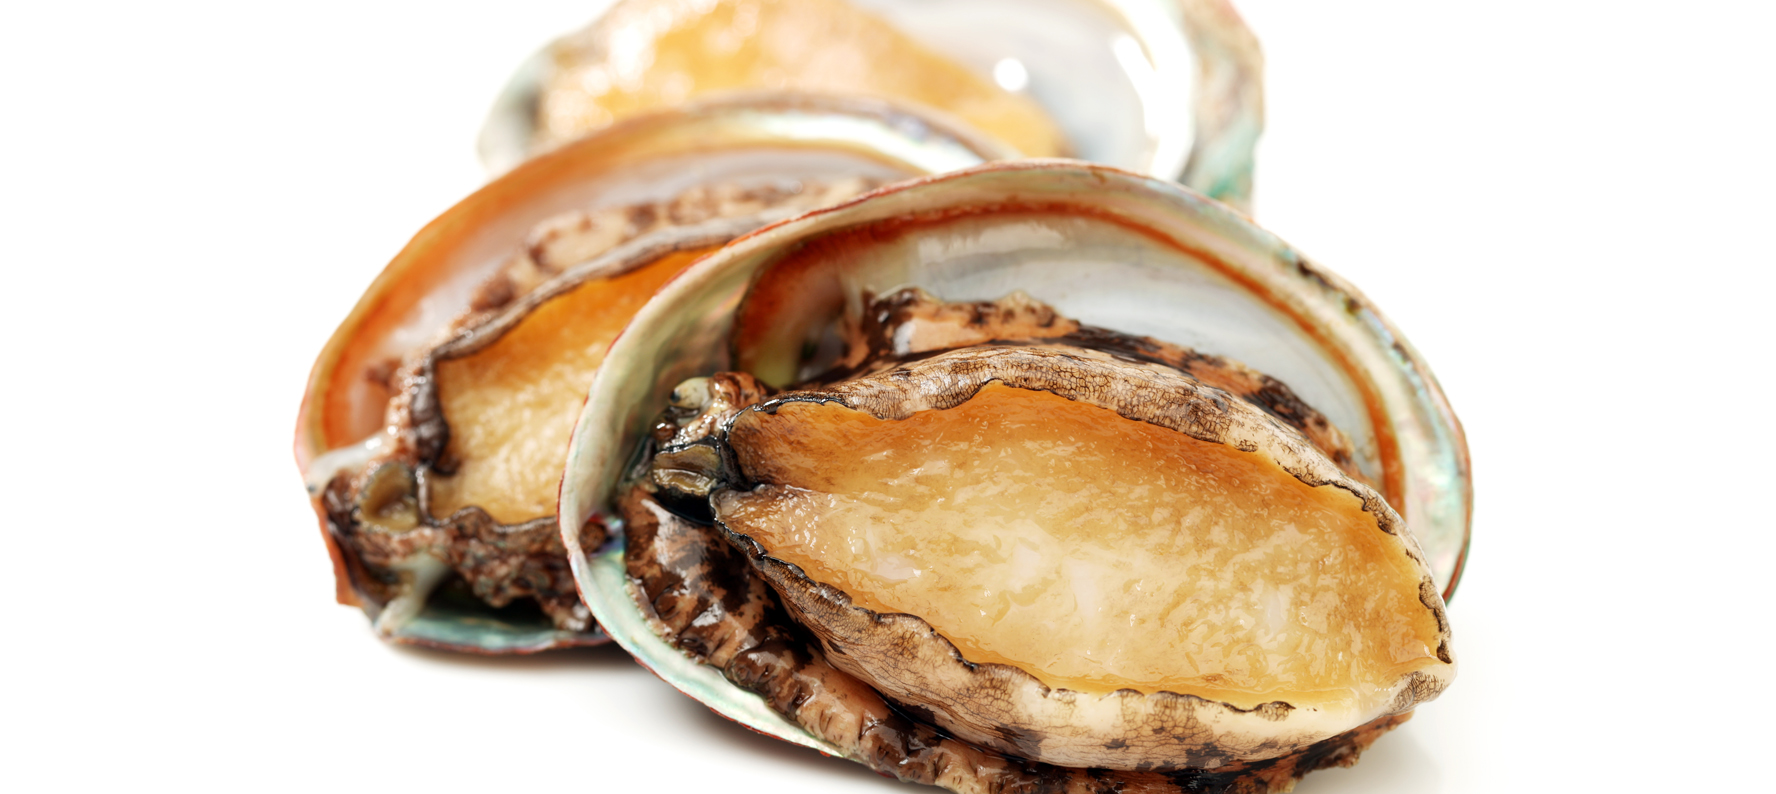 Abalones (Paua) Abalone Extract is udes in natural skin care products because it provides a concentrated source of more than 25 vitamins and minerals and is particularly rich in Selenium, Magnesium and B12.